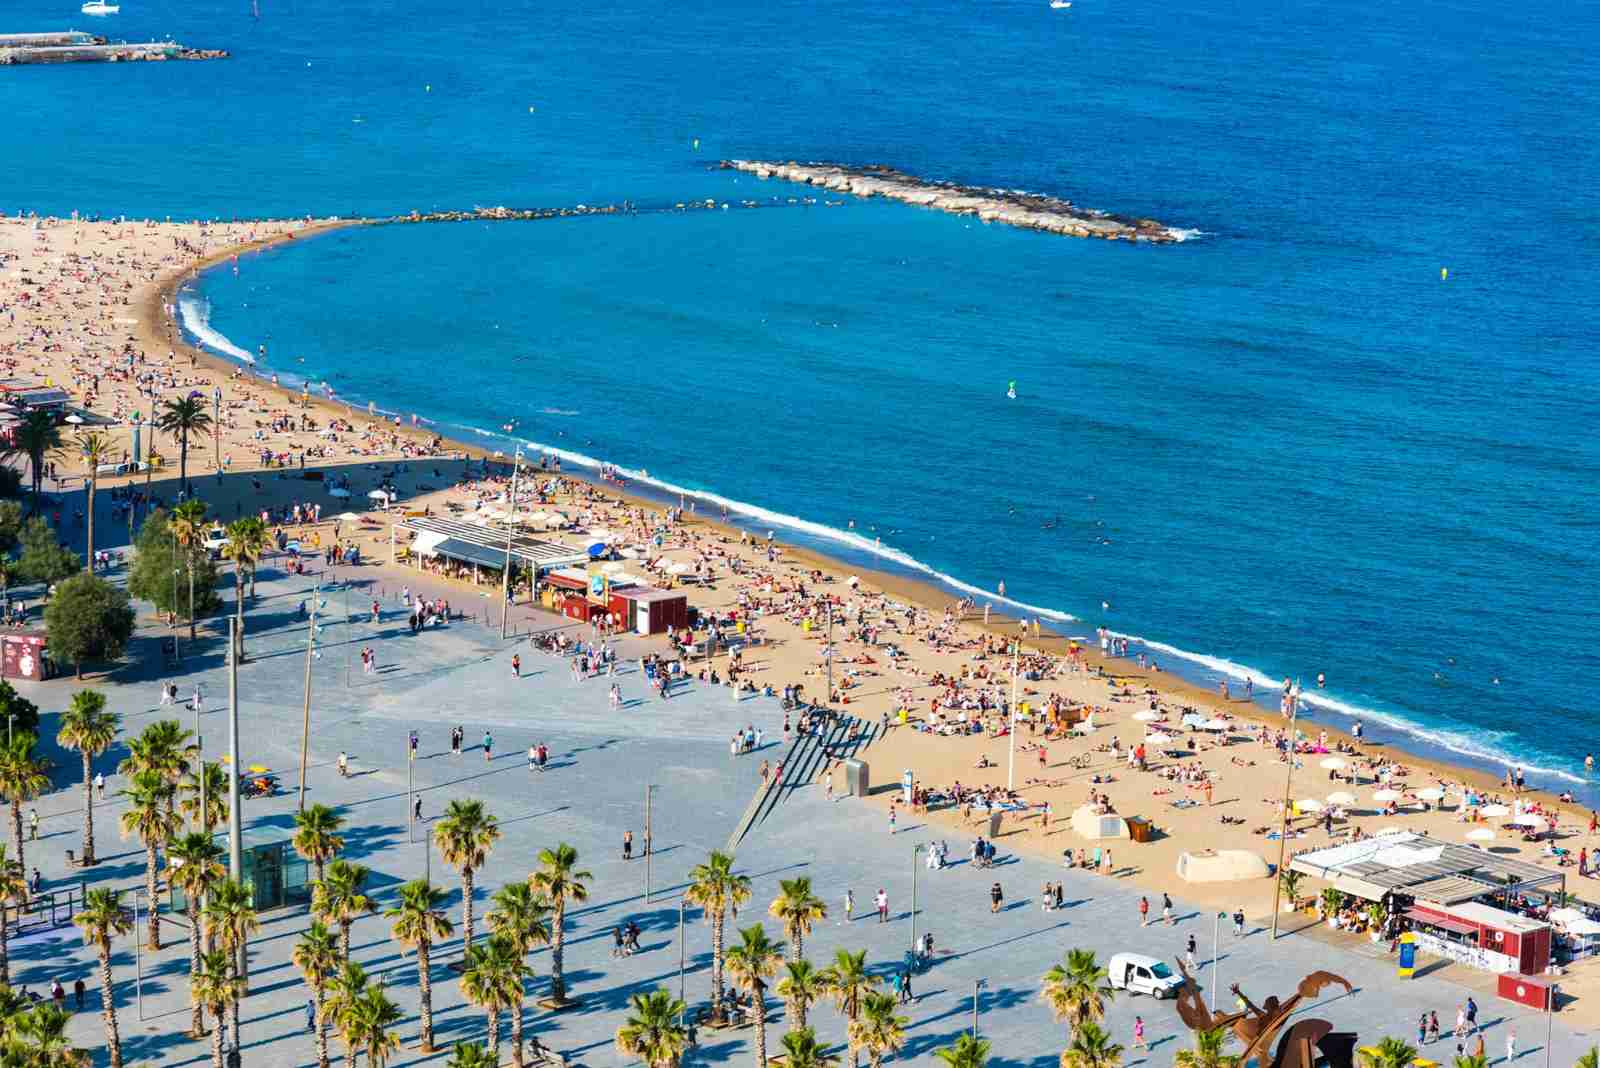 Barceloneta beach. (Photo by beyhanyazar / Getty Images)